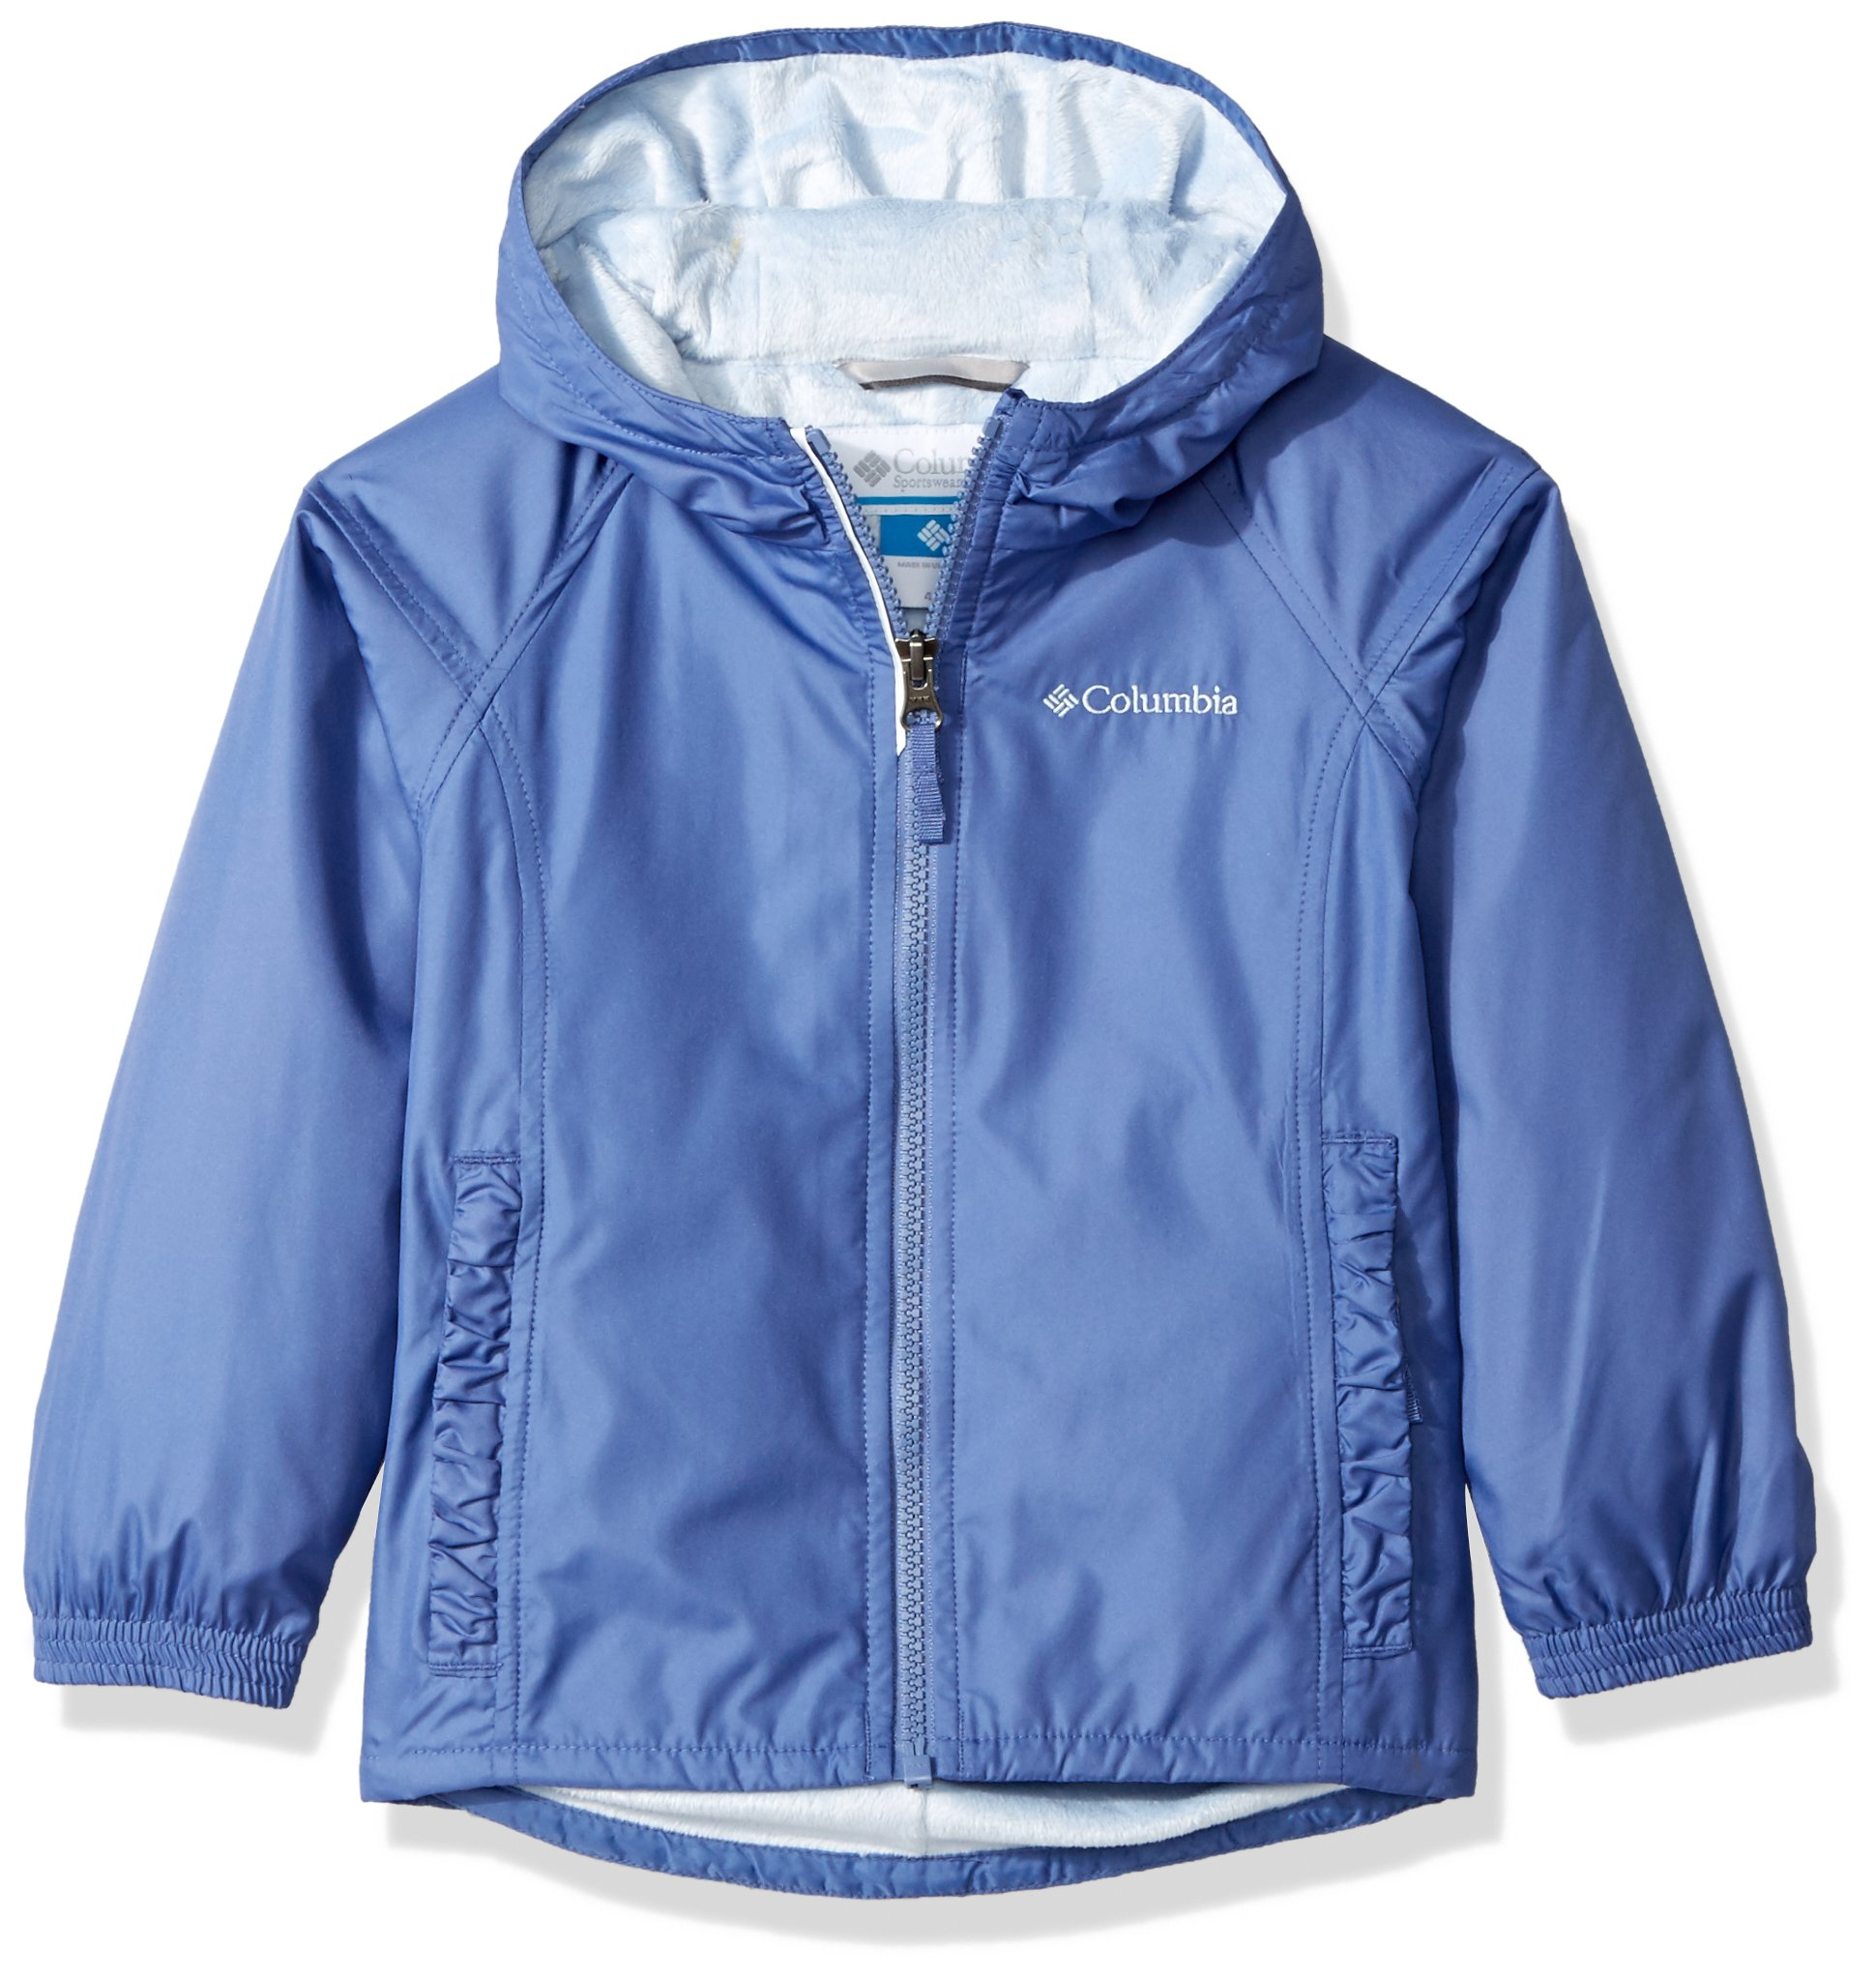 Columbia Little Girls' Ethan Pond Jacket, Eve, 2T by Columbia